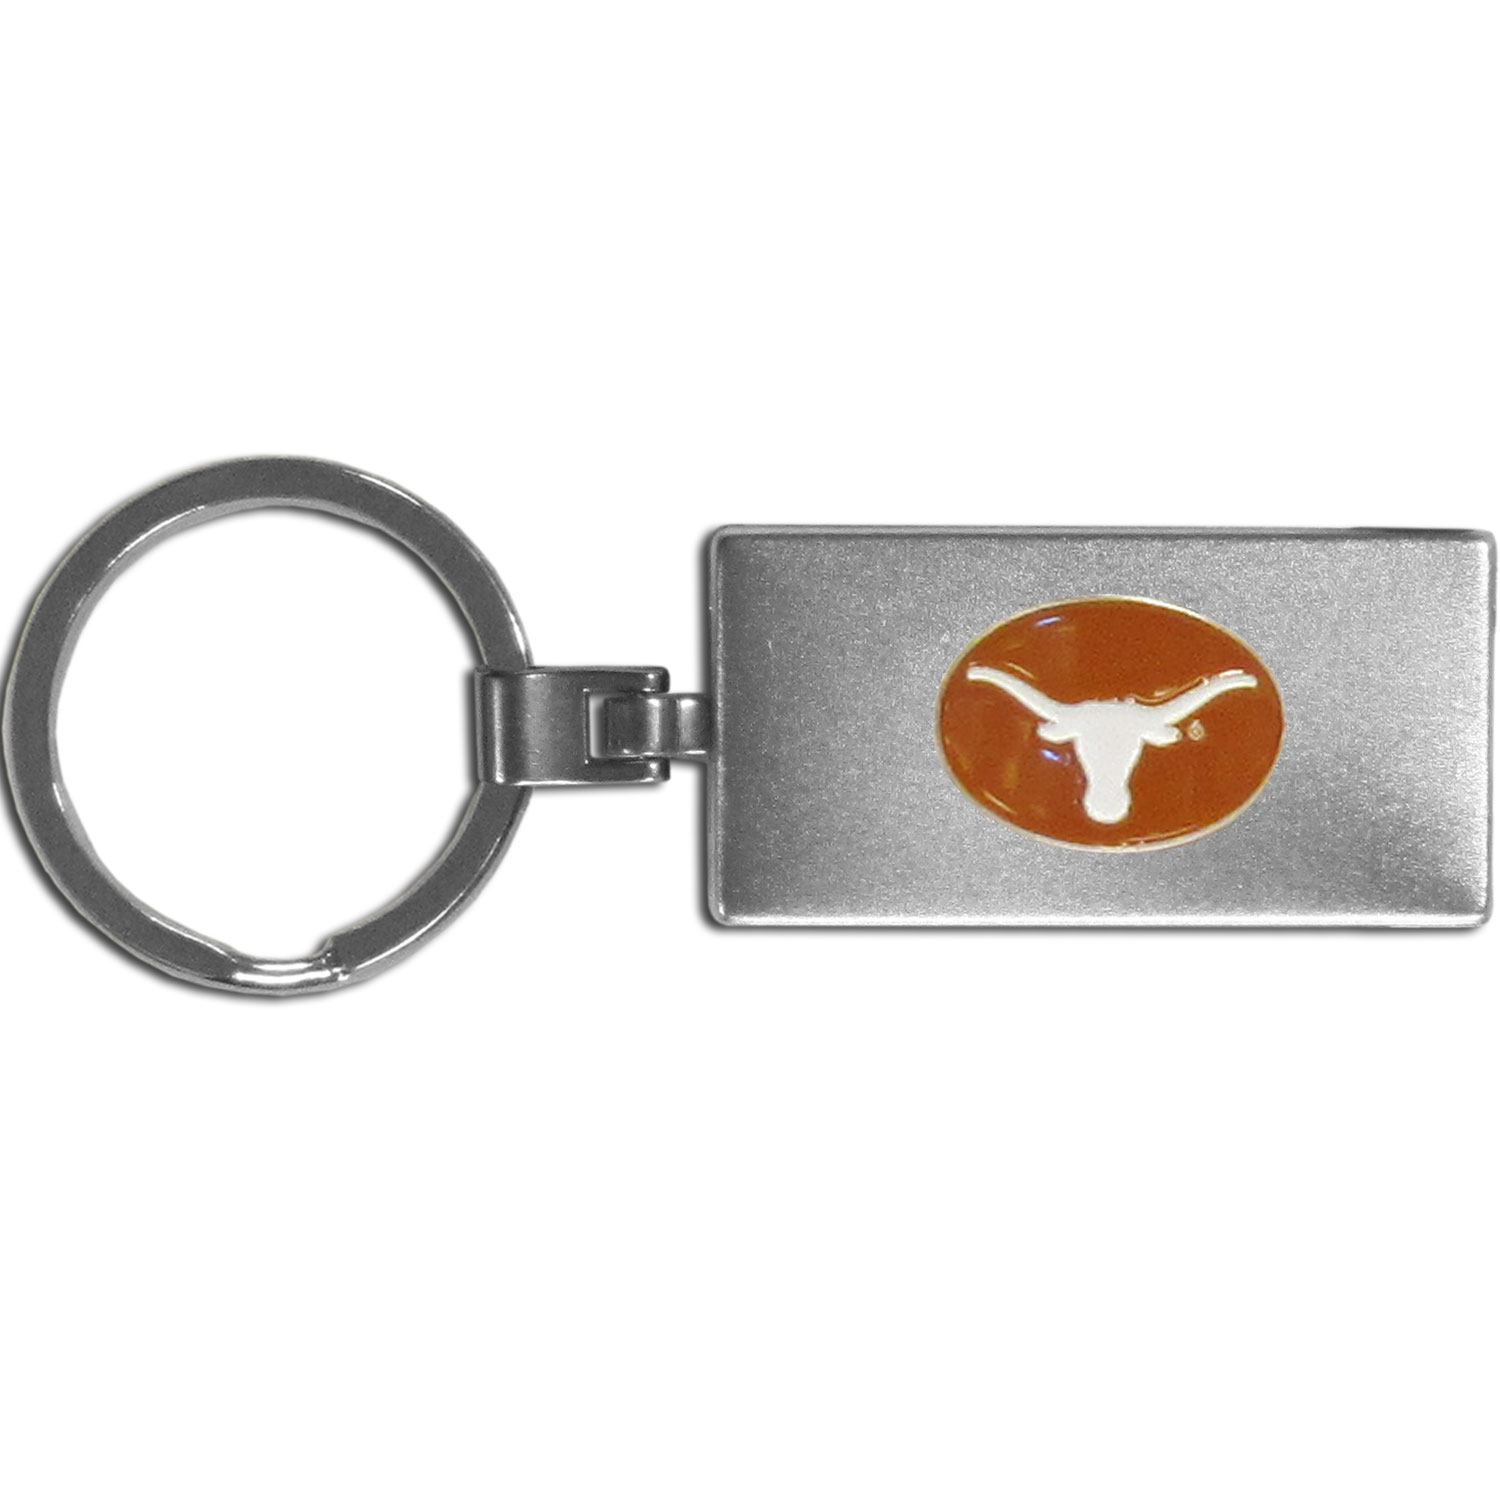 Texas Longhorns Multi-tool Key Chain - Be the hero at the tailgate, camping, or on a Friday night with your Texas Longhorns Multi-Tool Keychain which comes complete with bottle opener, scissors, knife, nail file and screw driver. Be it opening a package or a beverage Siskiyou's Multi-Tool Keychain goes wherever your keys do. The keychain hangs at 4 inches long when closed.